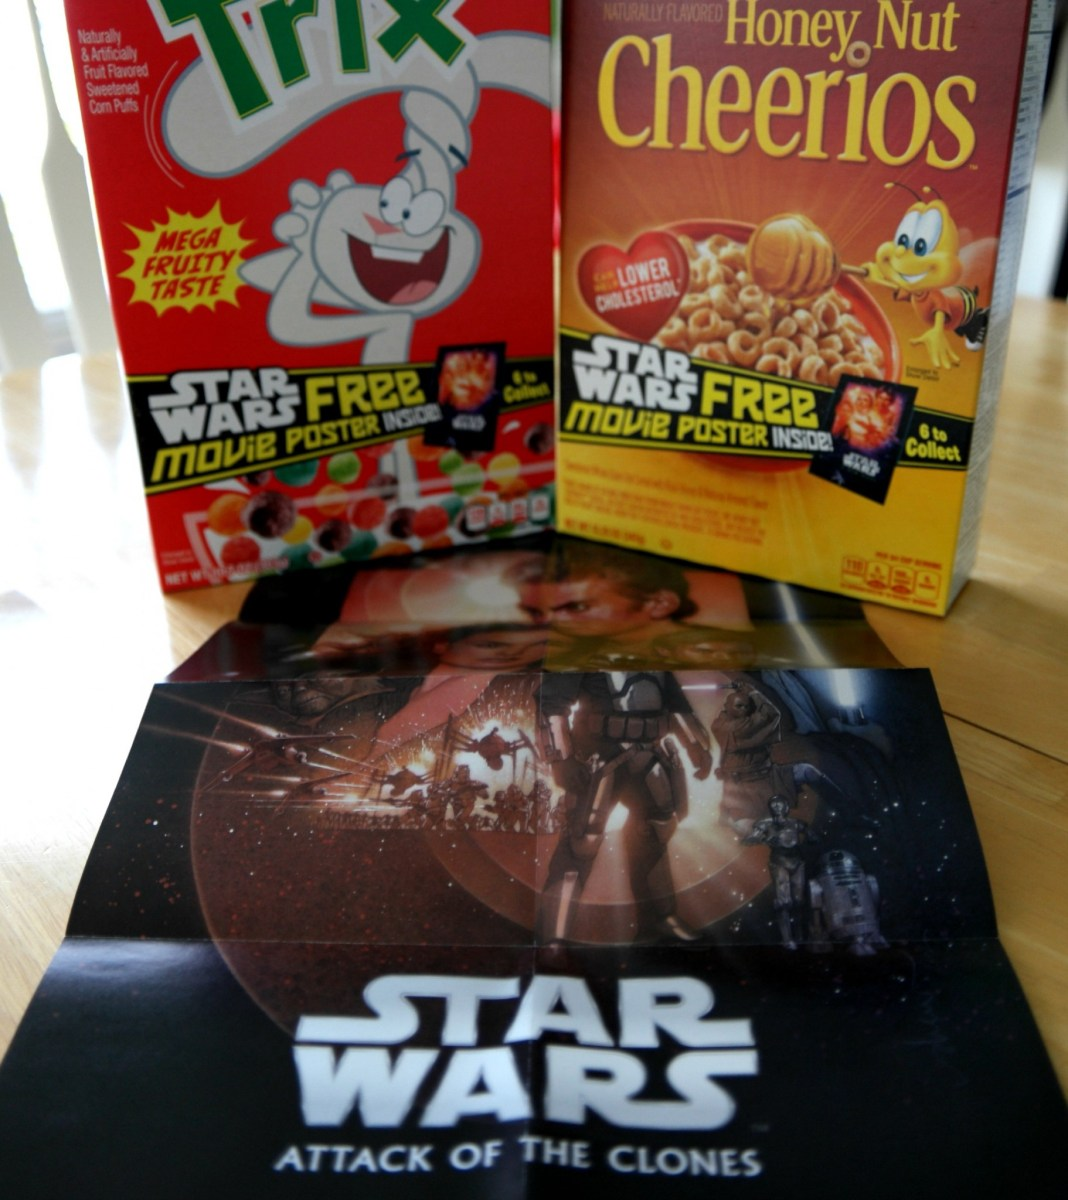 Star Wars & Cereal - Nothing Better!